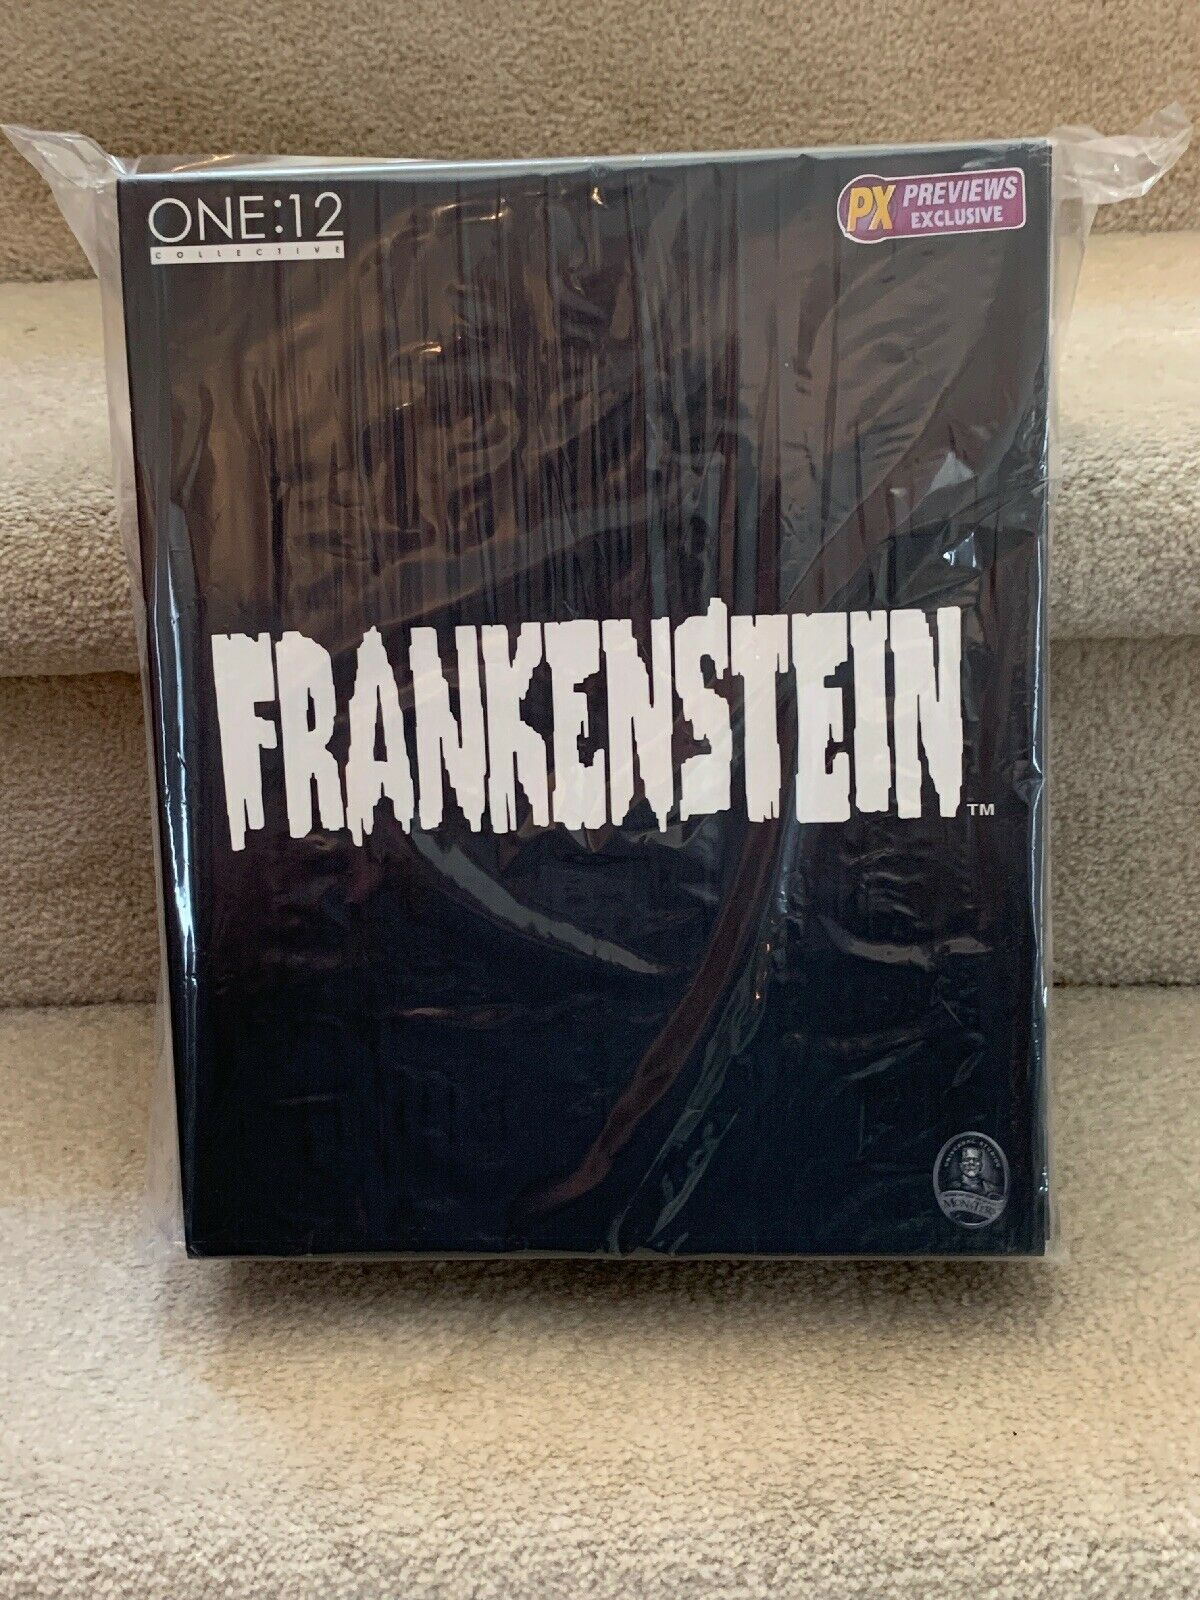 Mezco Toys 1 12 Collective Frankenstein Acrion Figure